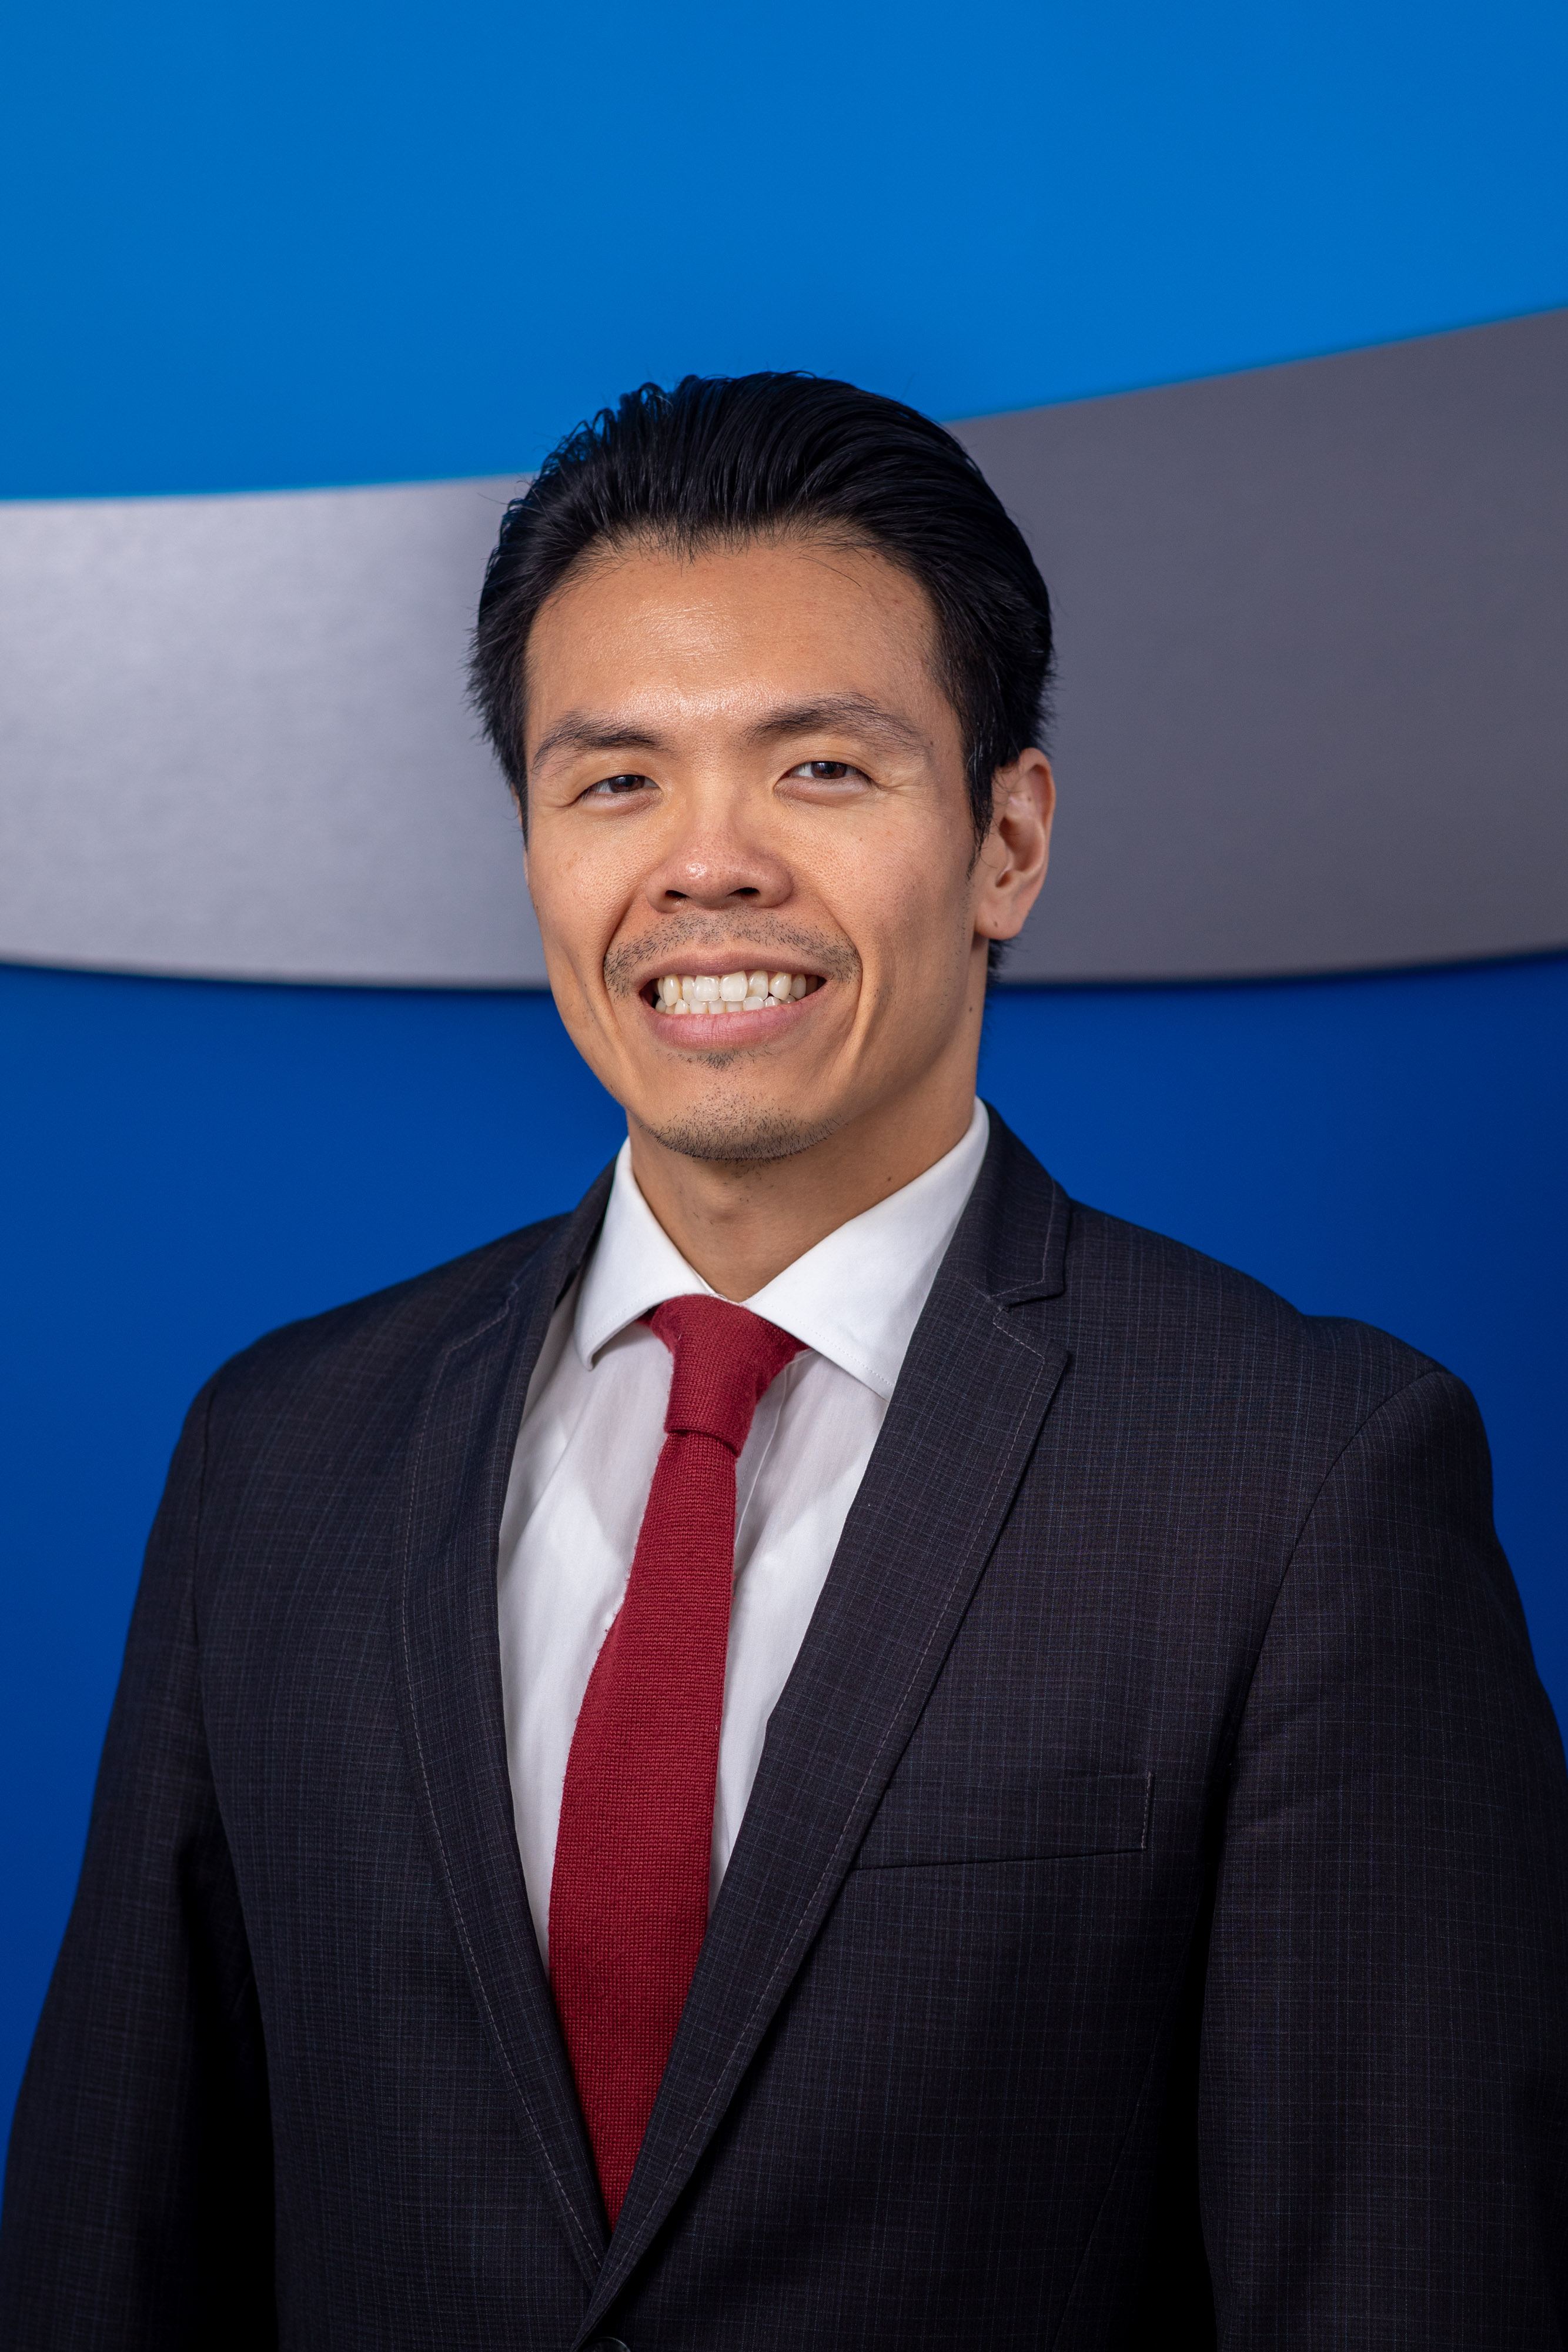 Anthony Lo, PTA